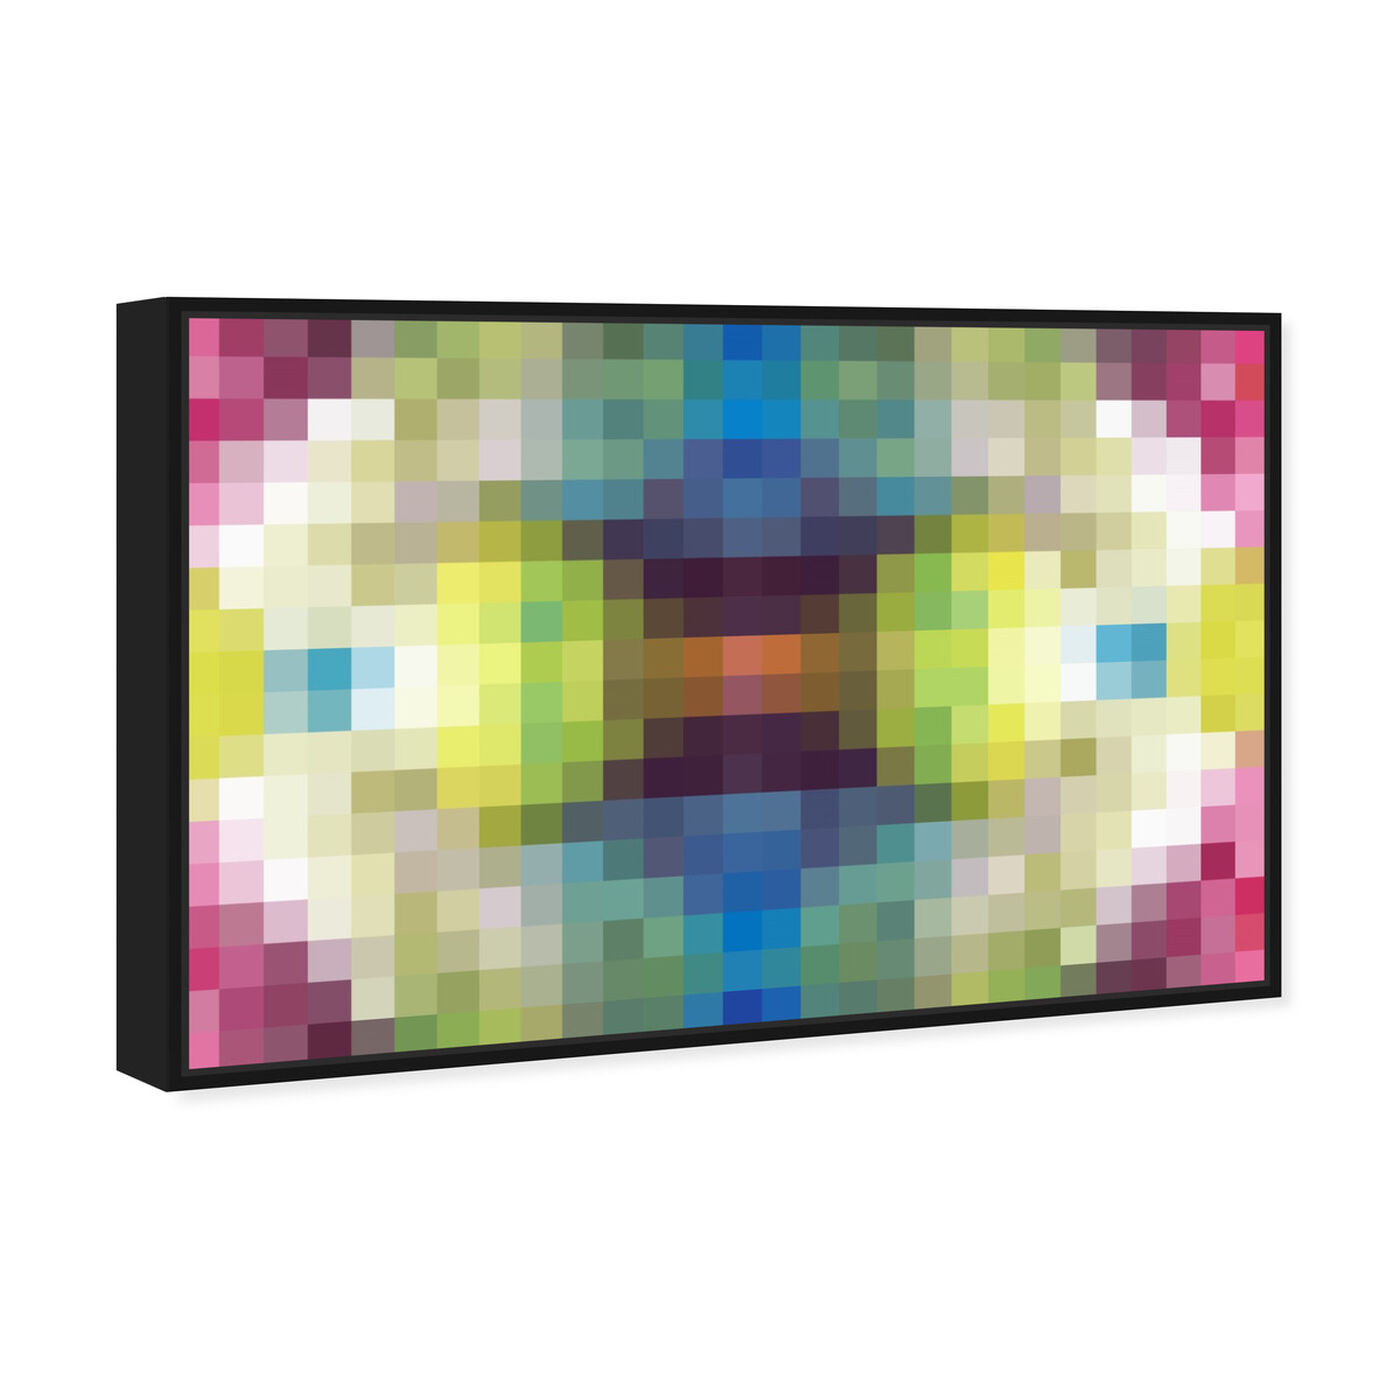 Angled view of Candy Store Pixel featuring abstract and textures art.